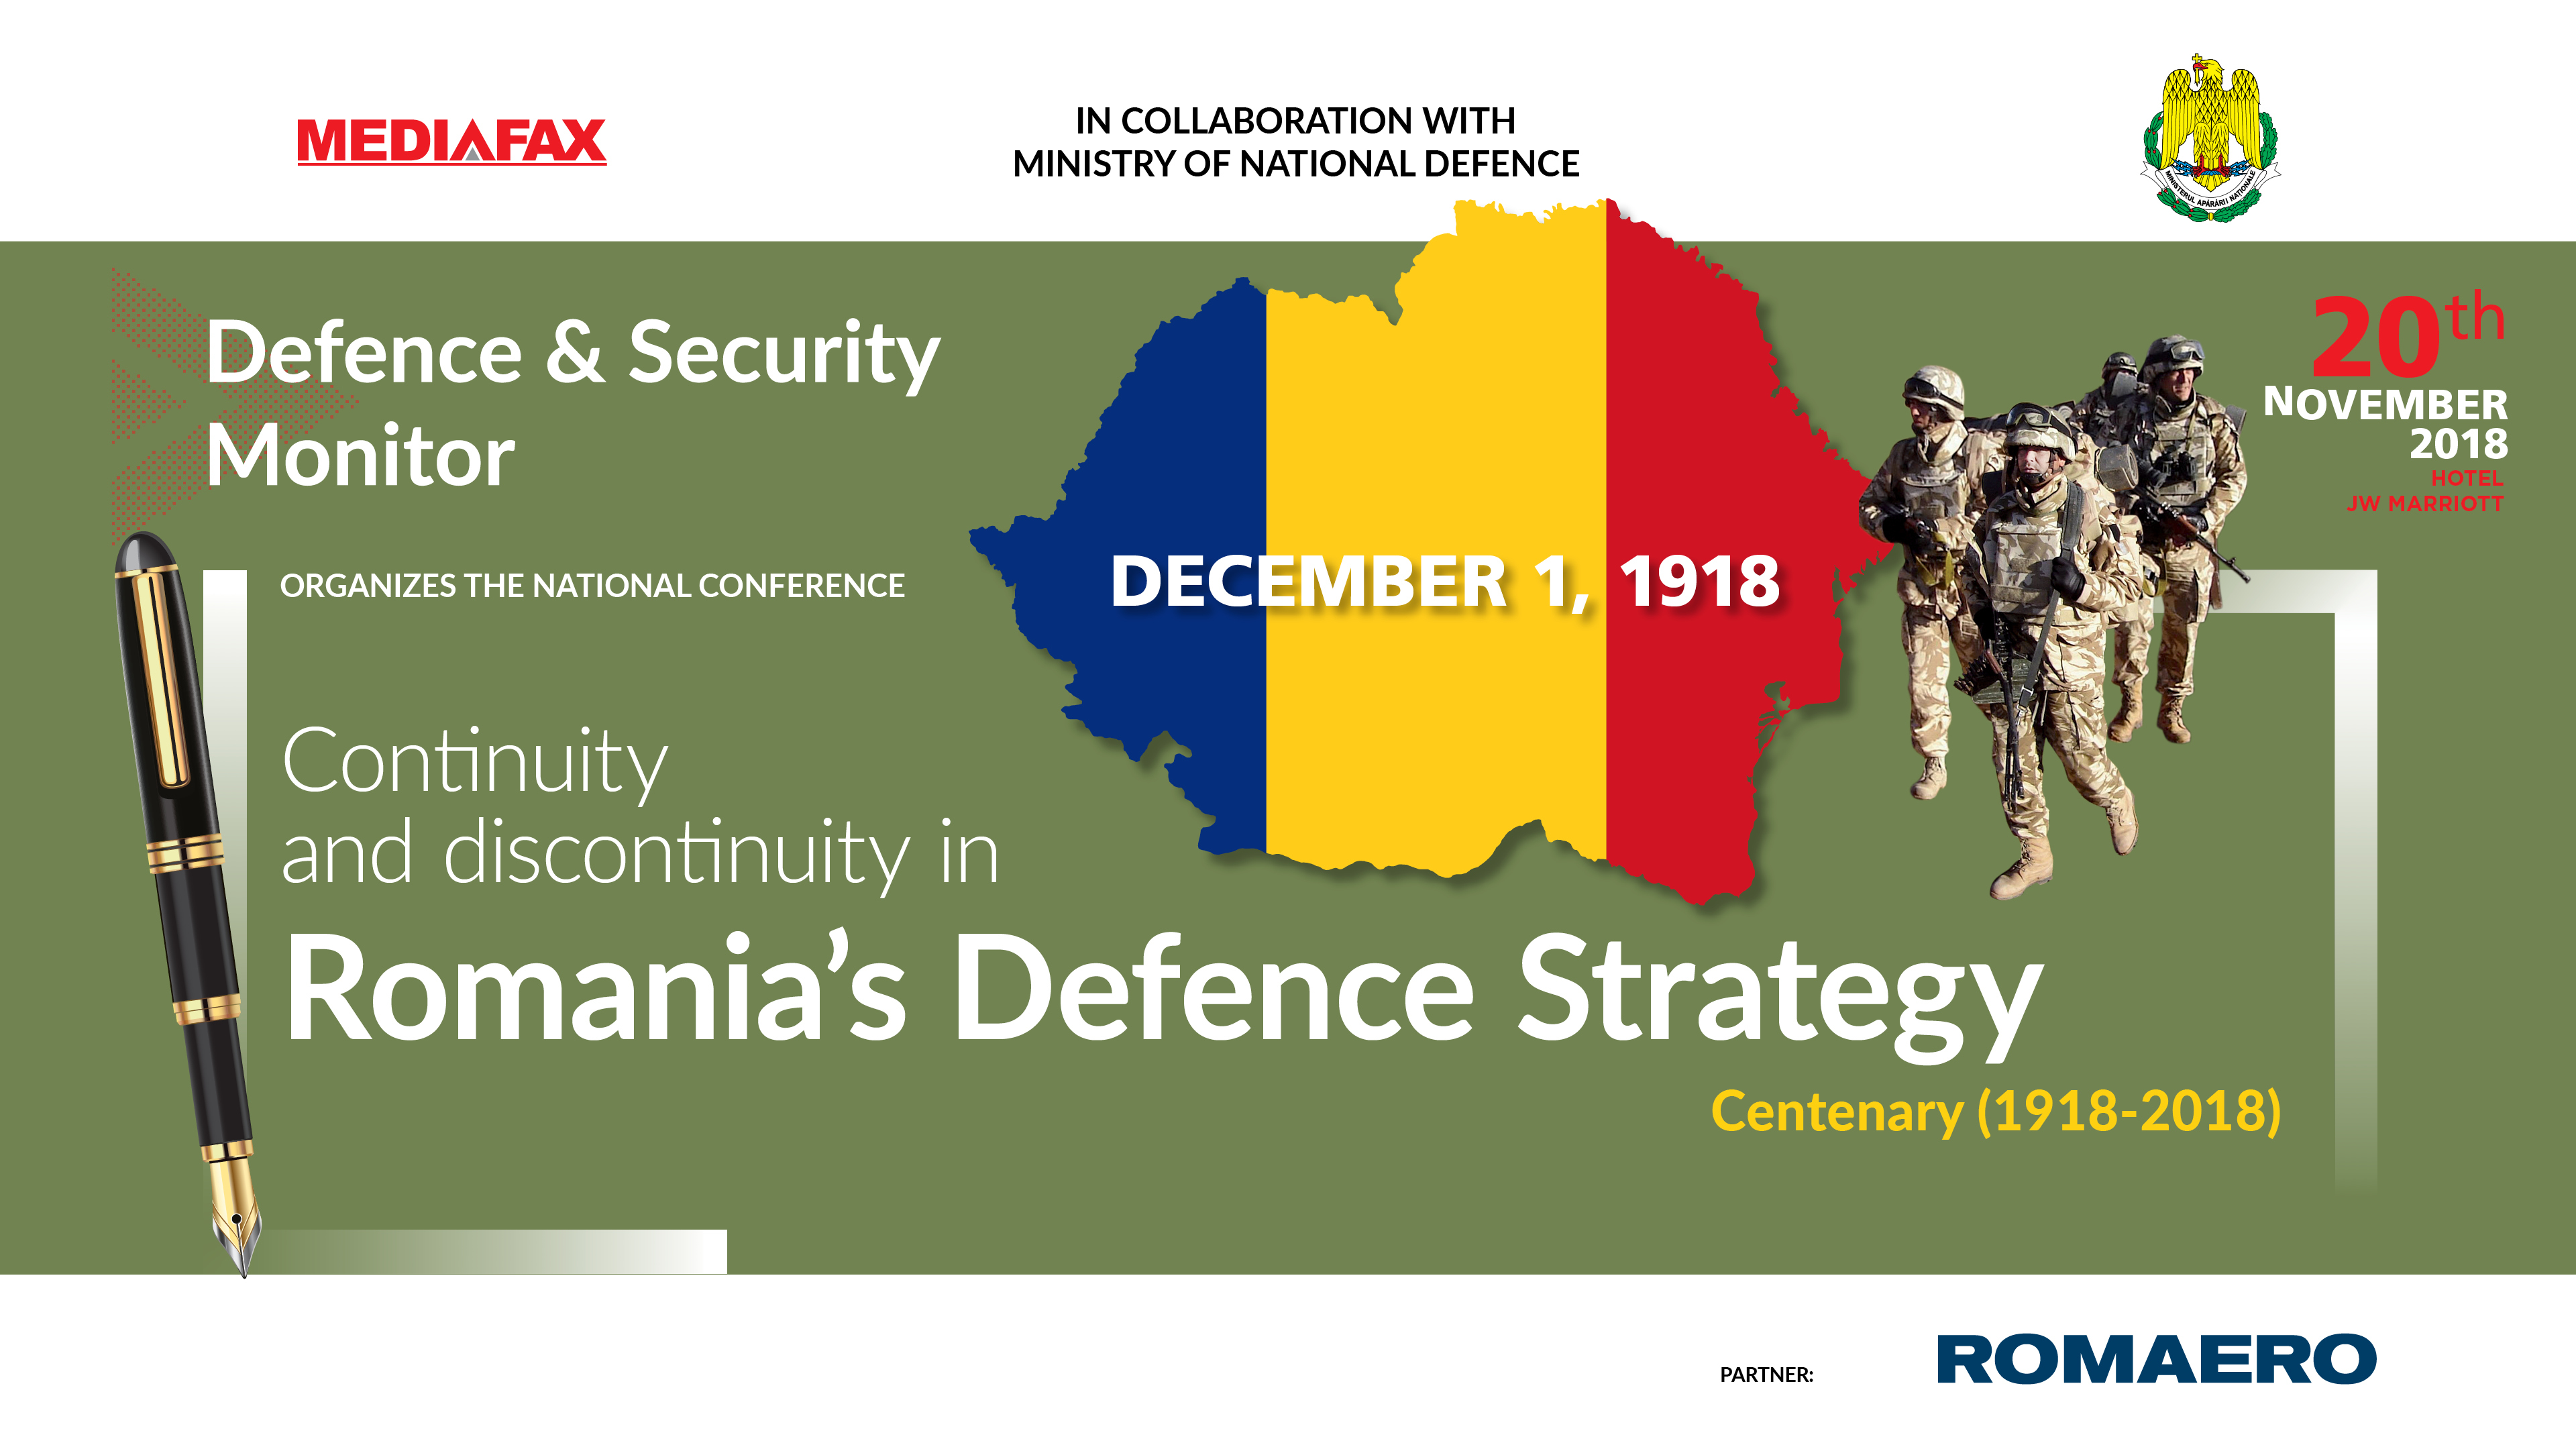 Continuity and discontinuity in Romania's defence strategy during the 100 years since Romania's Great Union